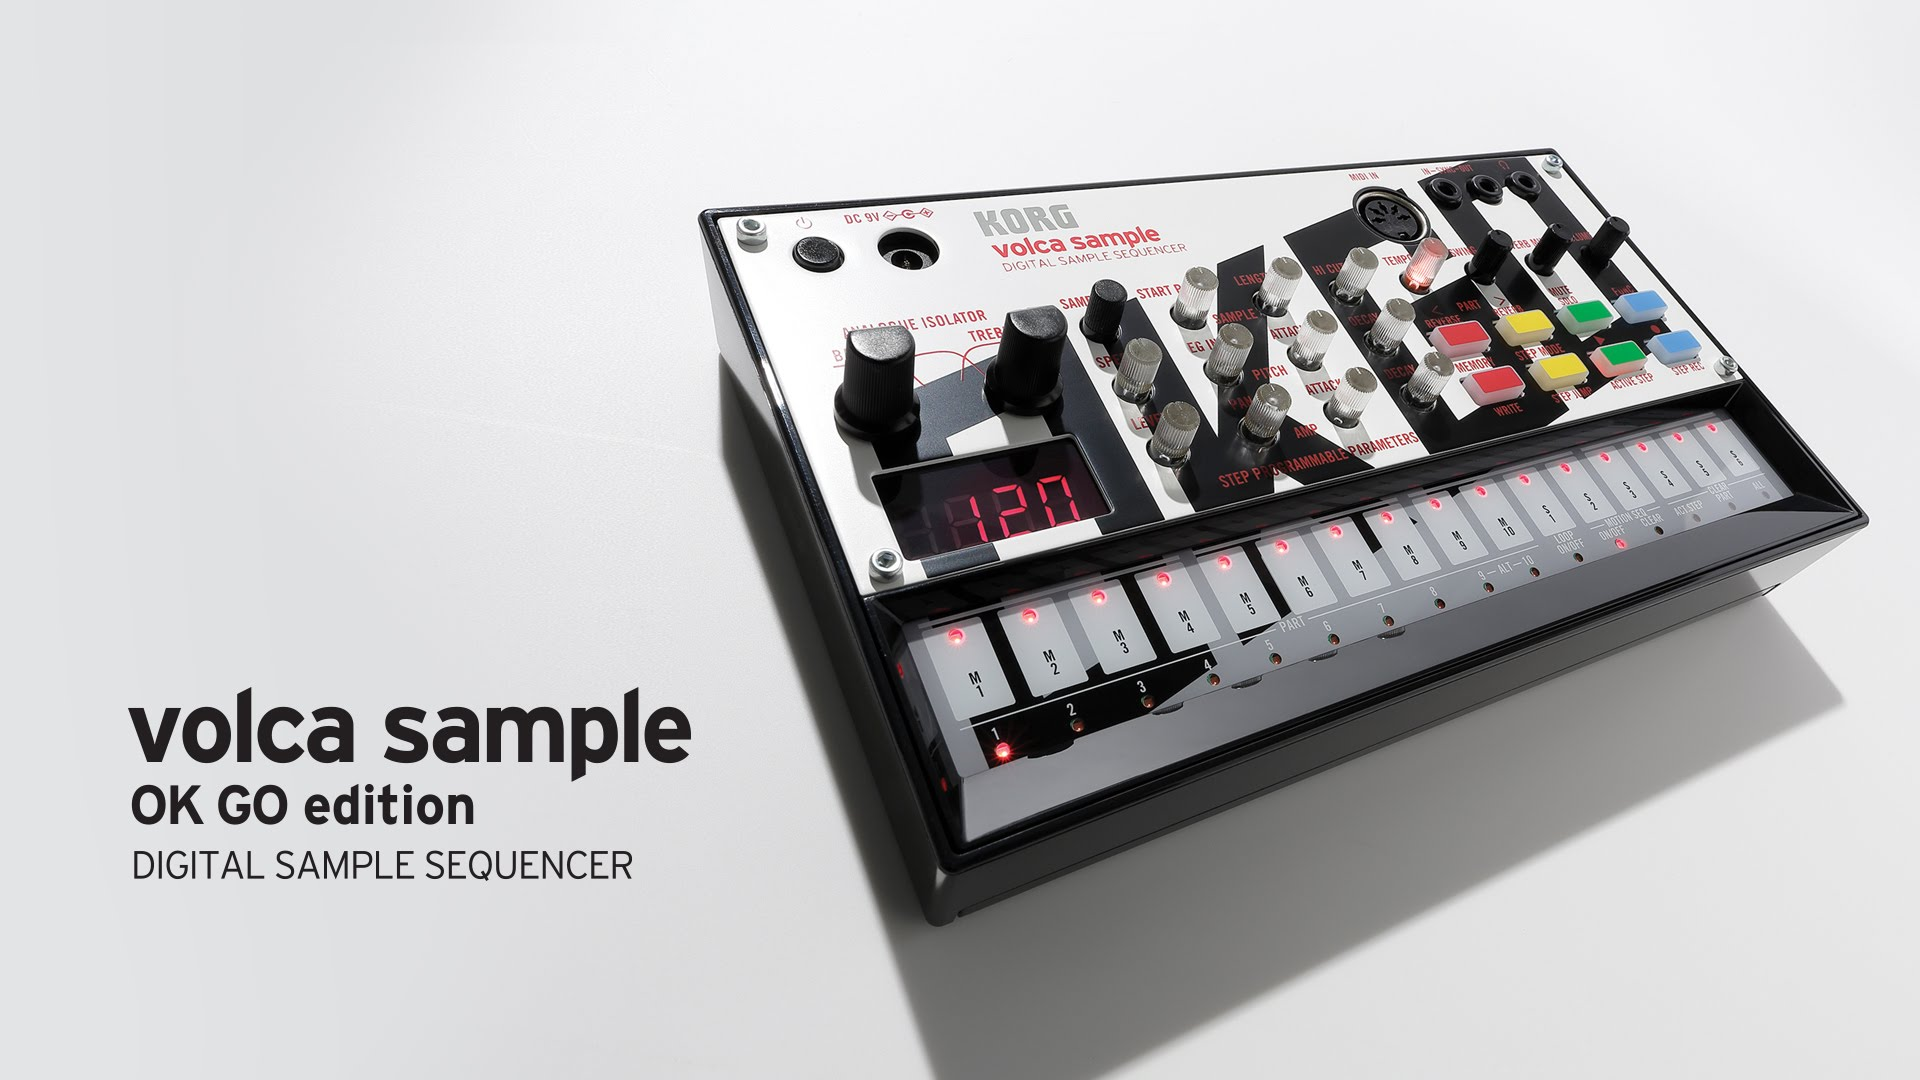 how to get new samples for volca sample